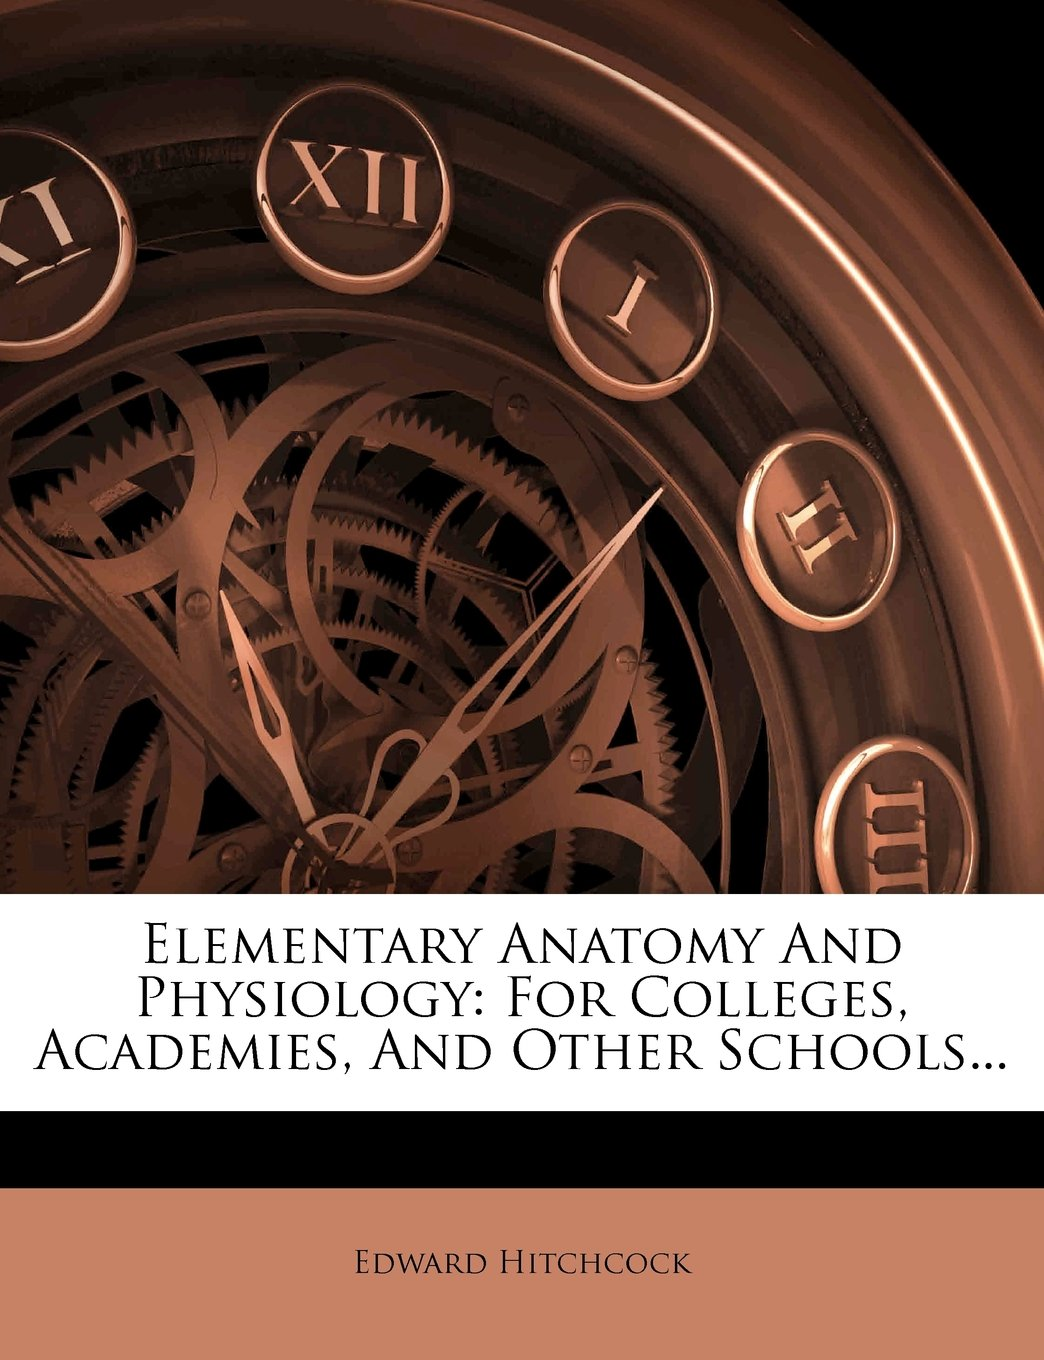 Elementary Anatomy And Physiology: For Colleges, Academies, And Other Schools... pdf epub